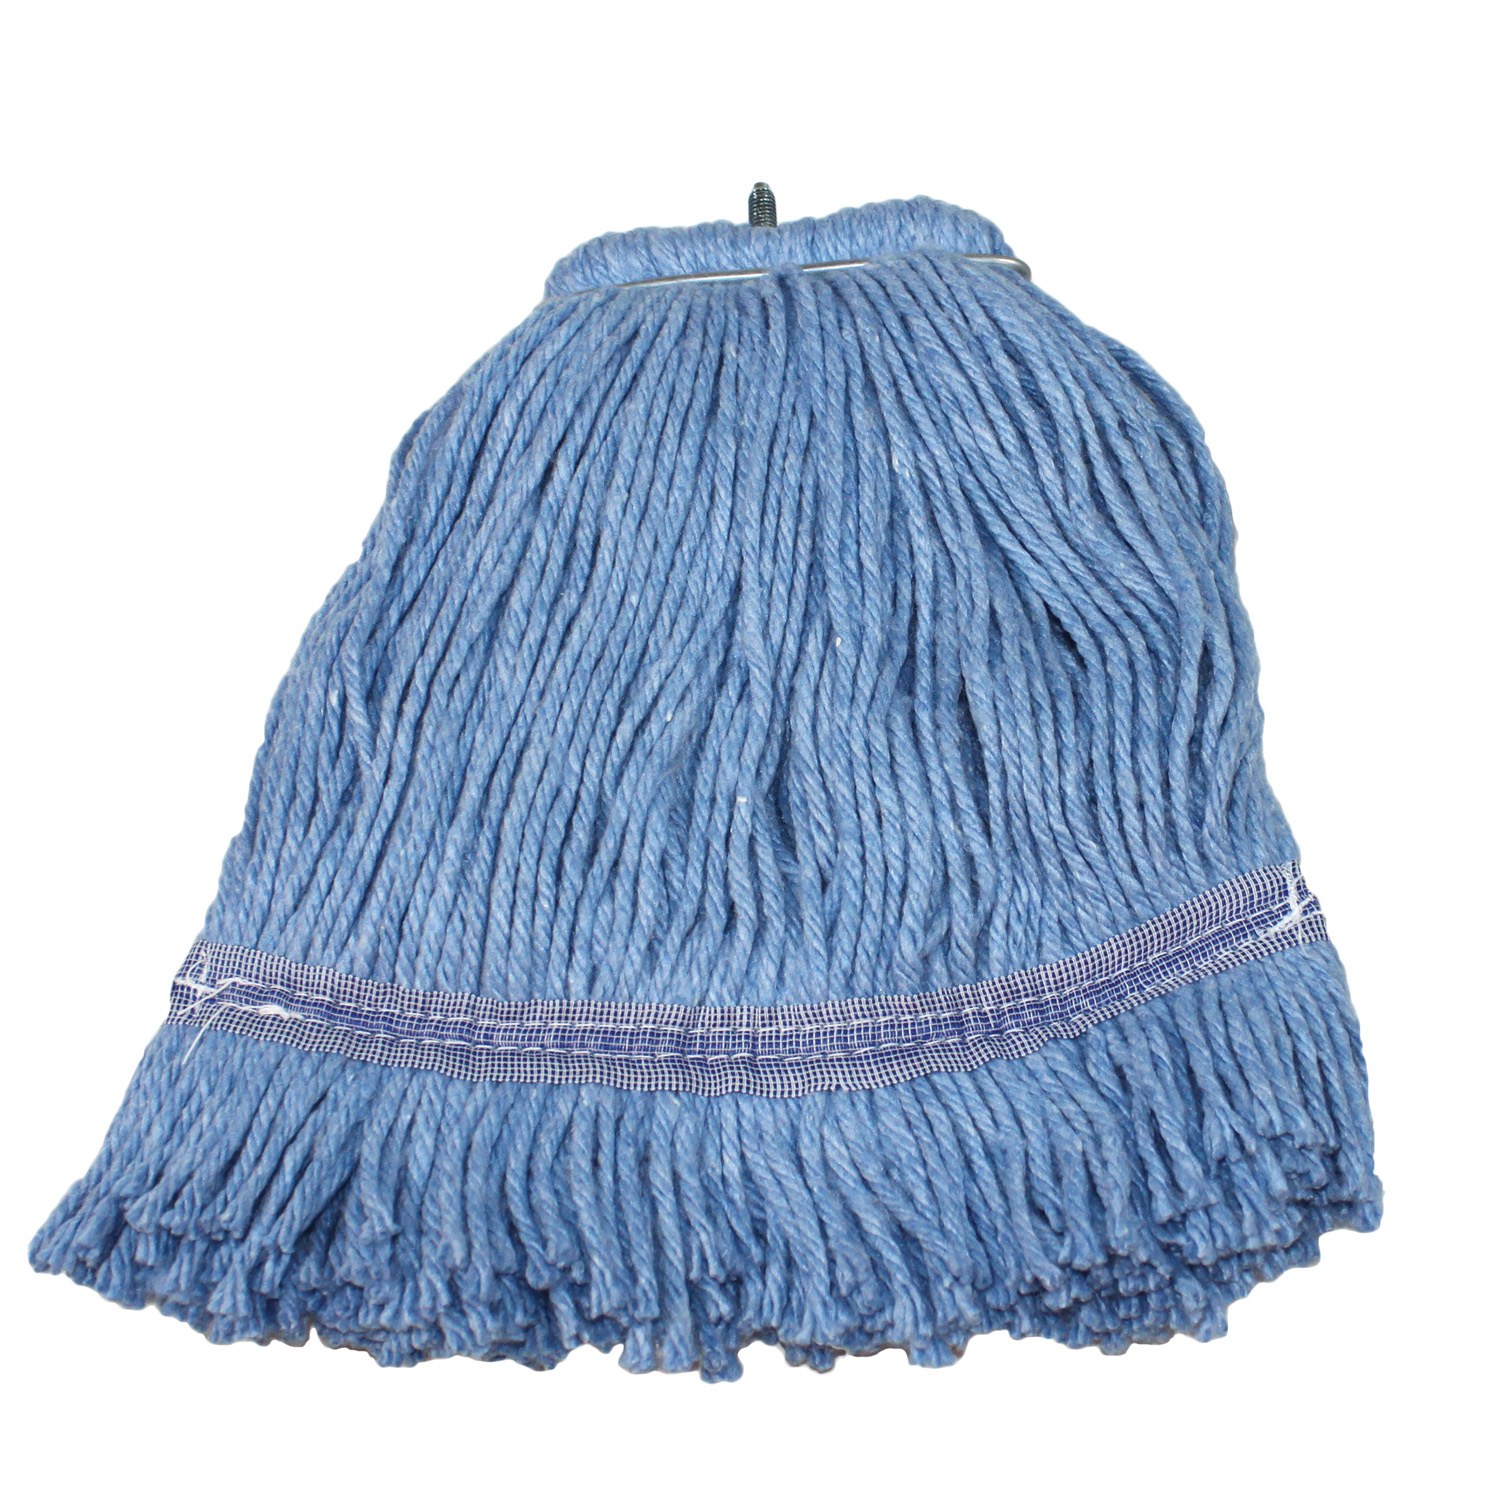 Impact Products 36116 wet mop head